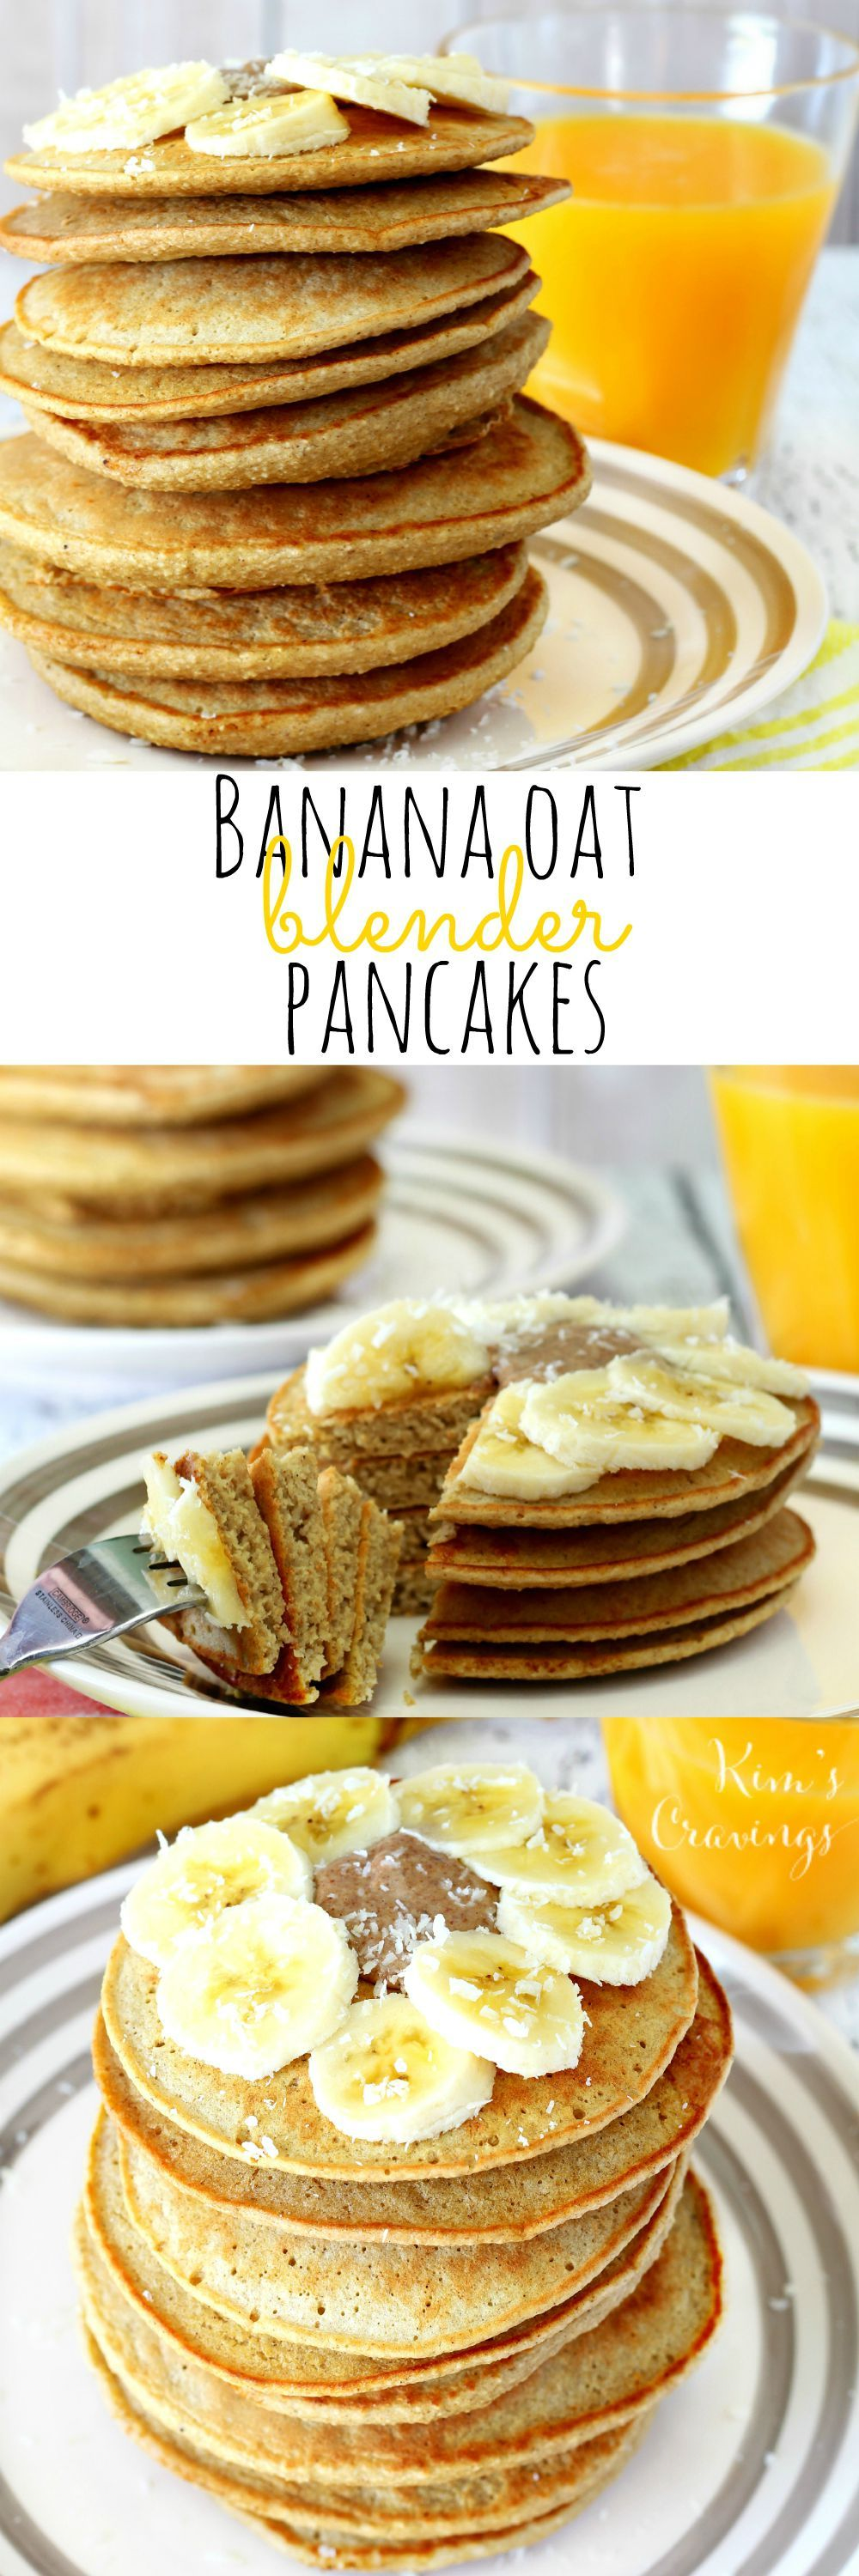 banana oat blender pancakes rezept light healthy eats pinterest fr hst ck gesund und. Black Bedroom Furniture Sets. Home Design Ideas